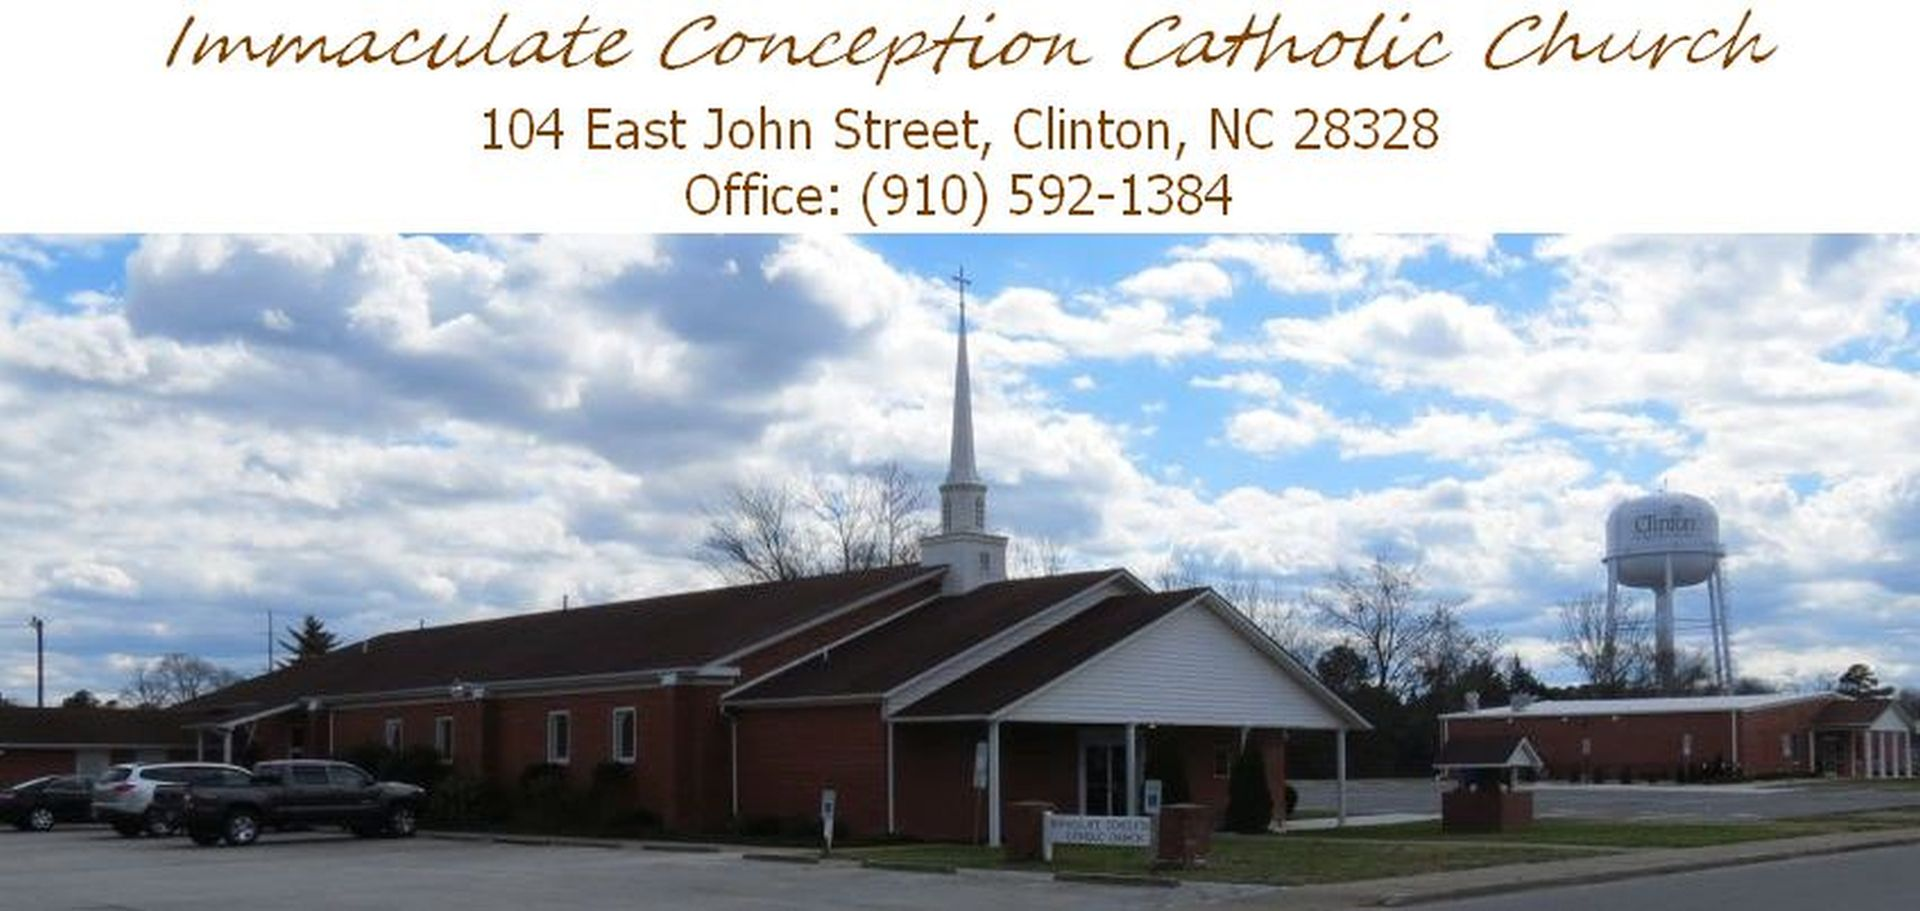 Imaculate Conception Catholic Church